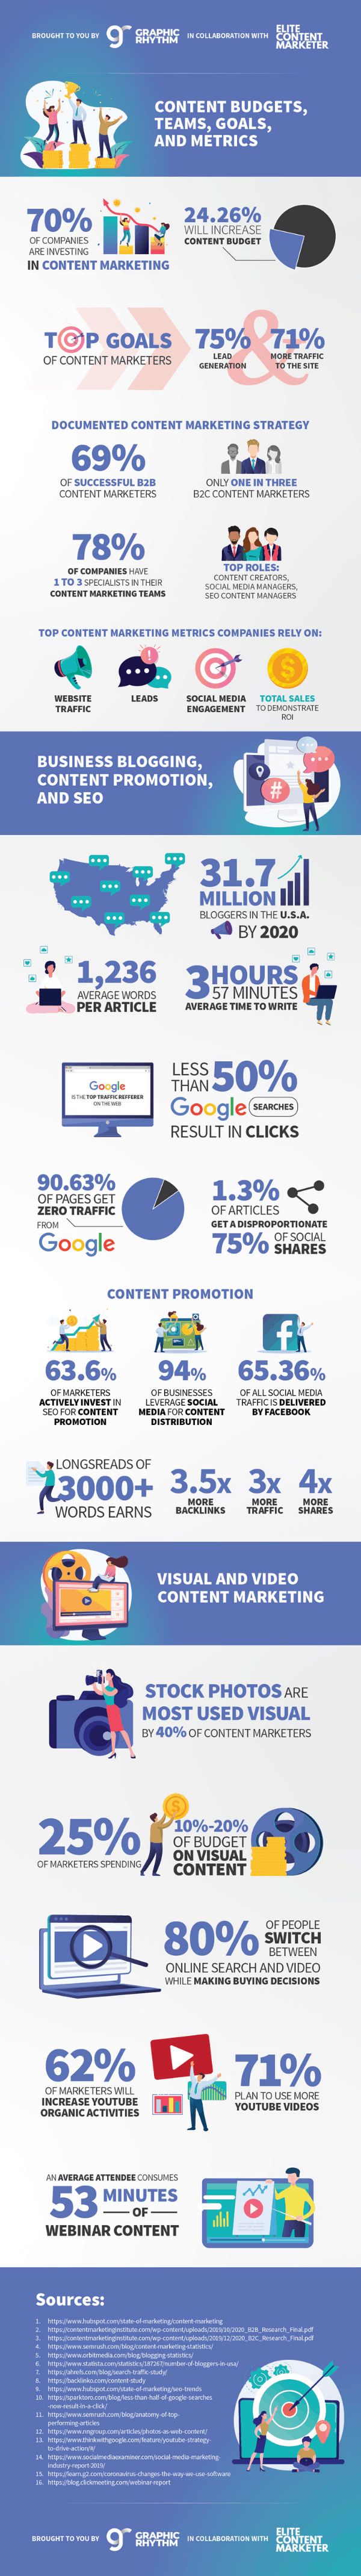 In this amazing infographic, you'll find a detailed analysis that will hopefully help you develop a stronger content marketing strategy for 2020.